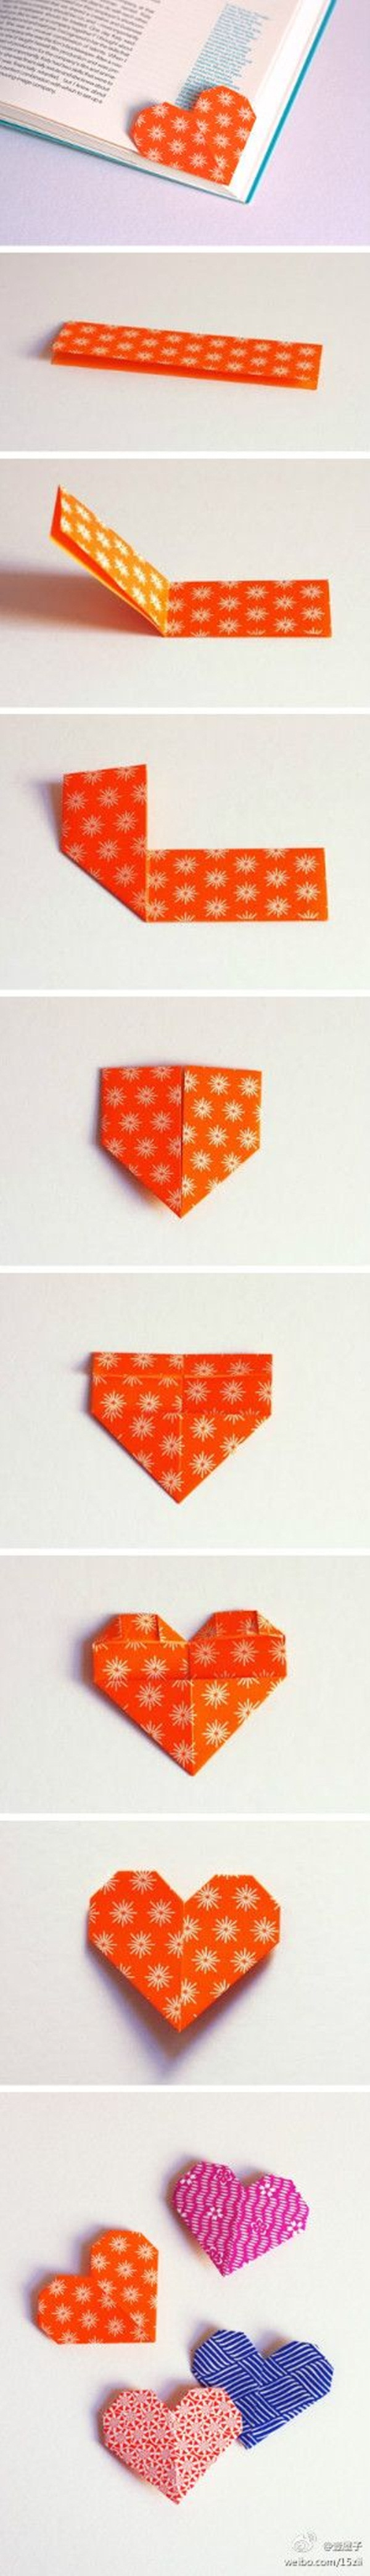 easy-origami-for-kids24